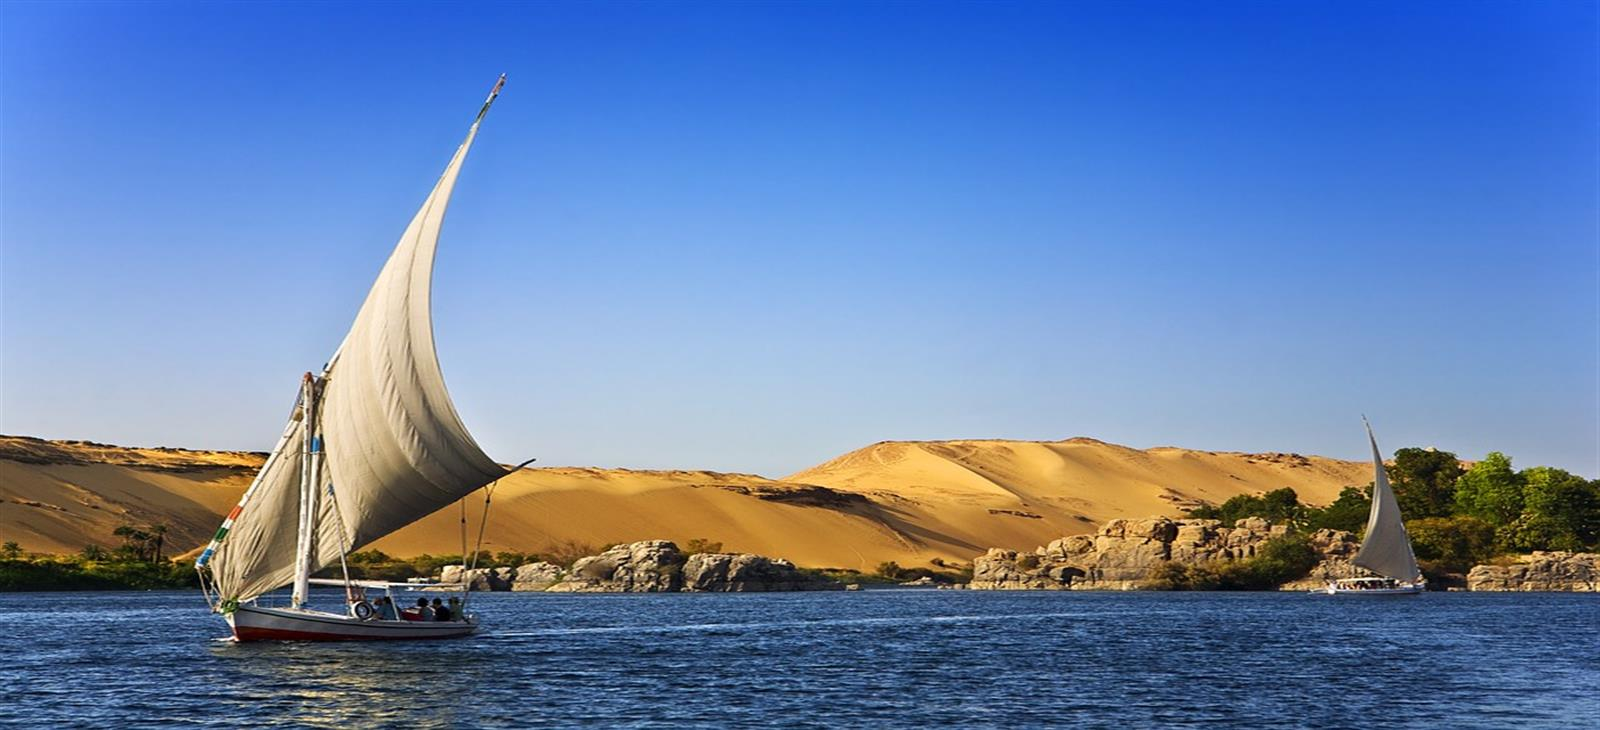 aswan tour by felucca